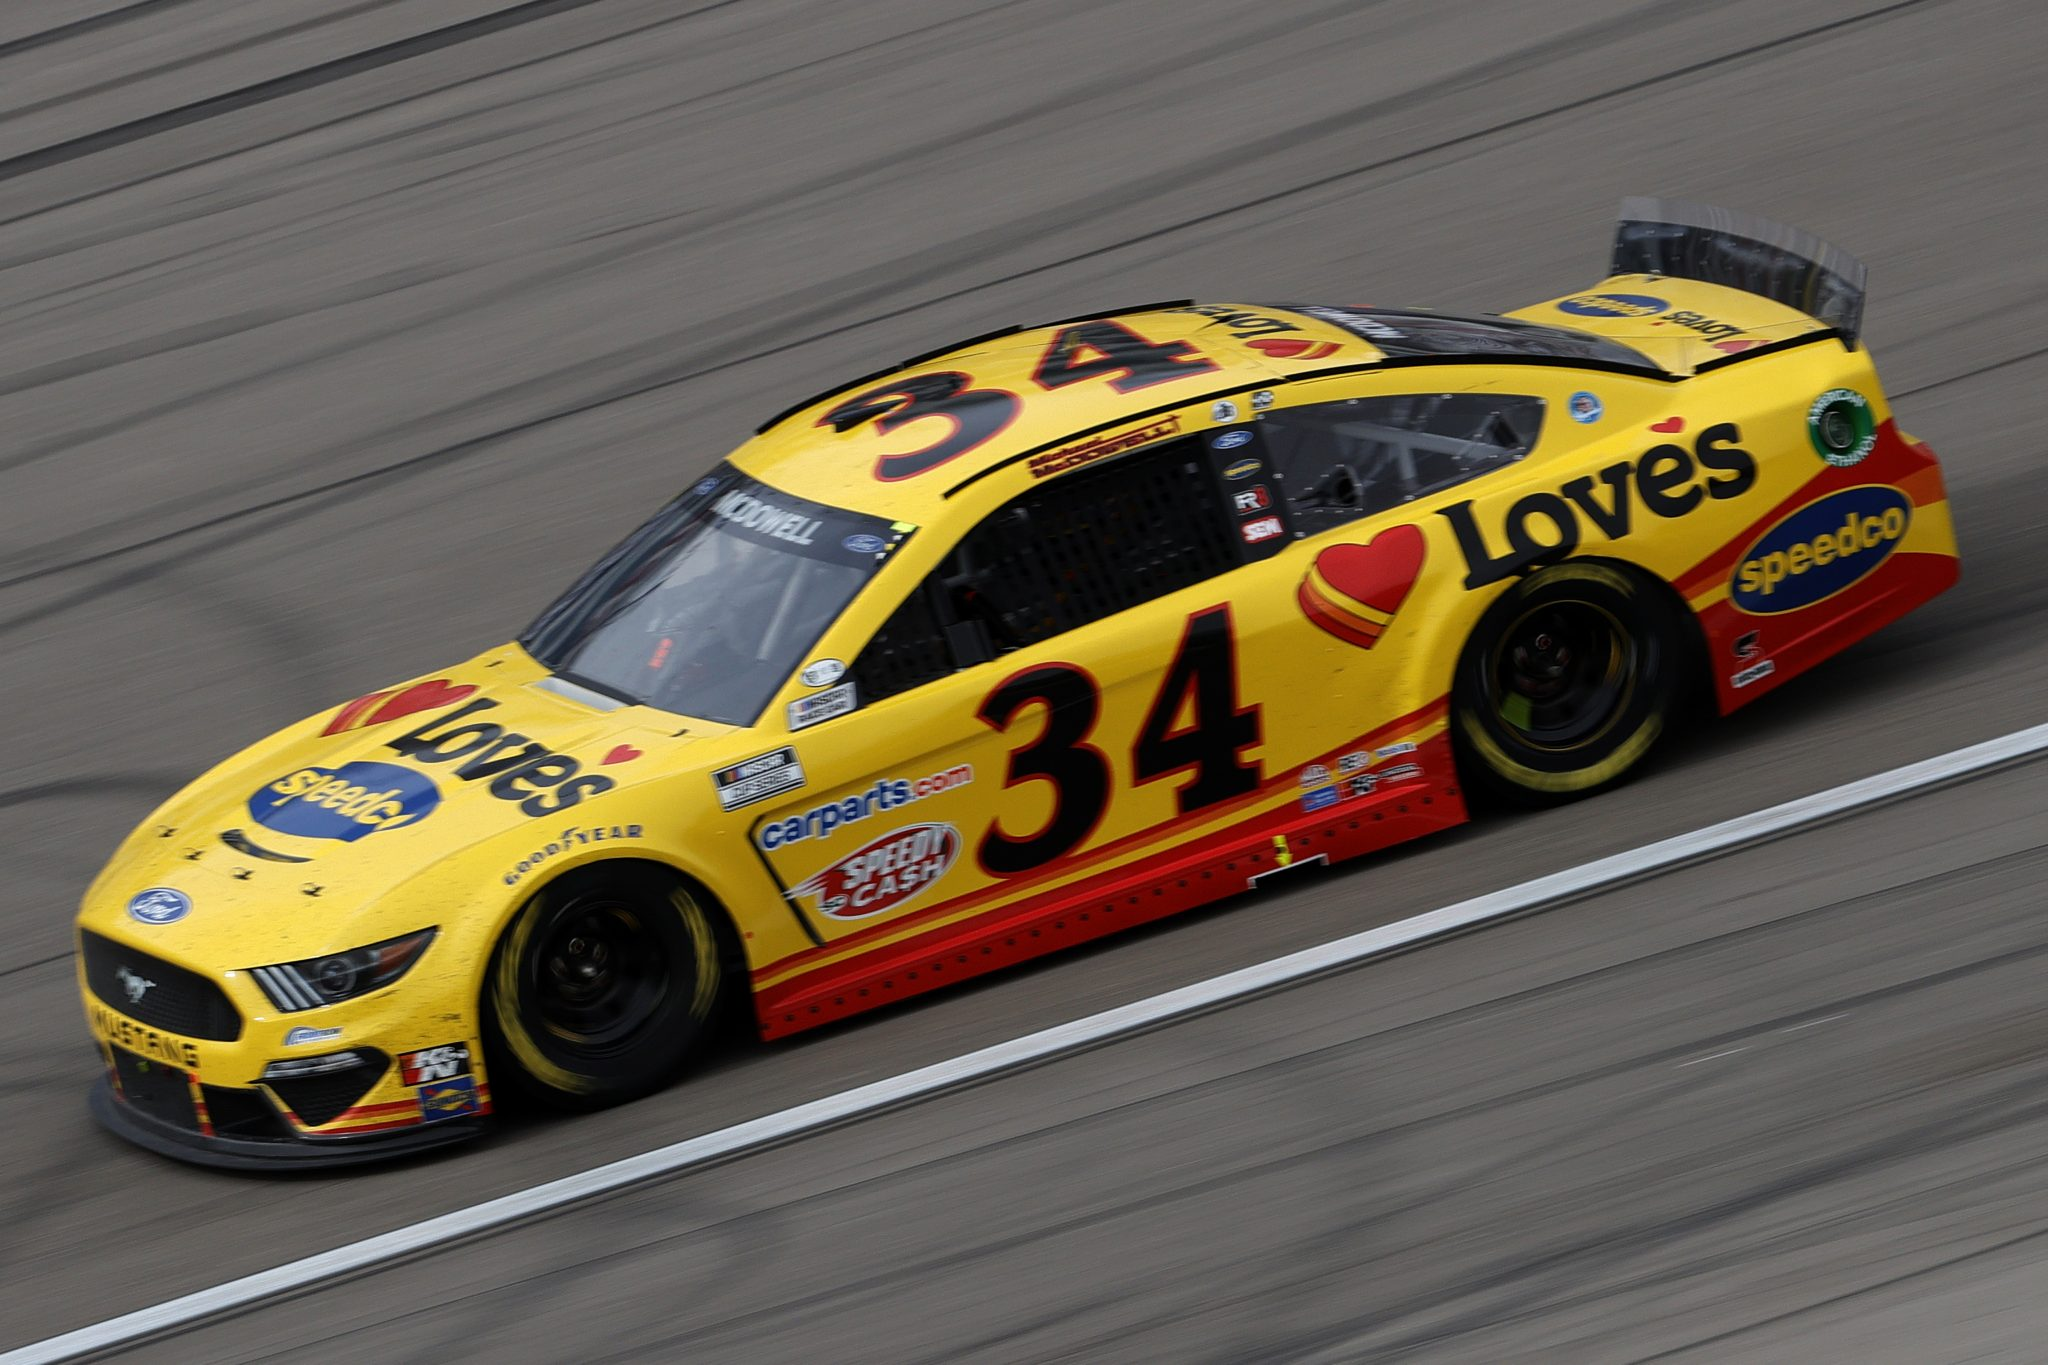 LAS VEGAS, NEVADA - MARCH 07: Michael McDowell, driver of the #34 Love's Travel Stops Ford, drives during the NASCAR Cup Series Pennzoil 400 presented by Jiffy Lube at the Las Vegas Motor Speedway on March 07, 2021 in Las Vegas, Nevada. (Photo by Chris Graythen/Getty Images) | Getty Images